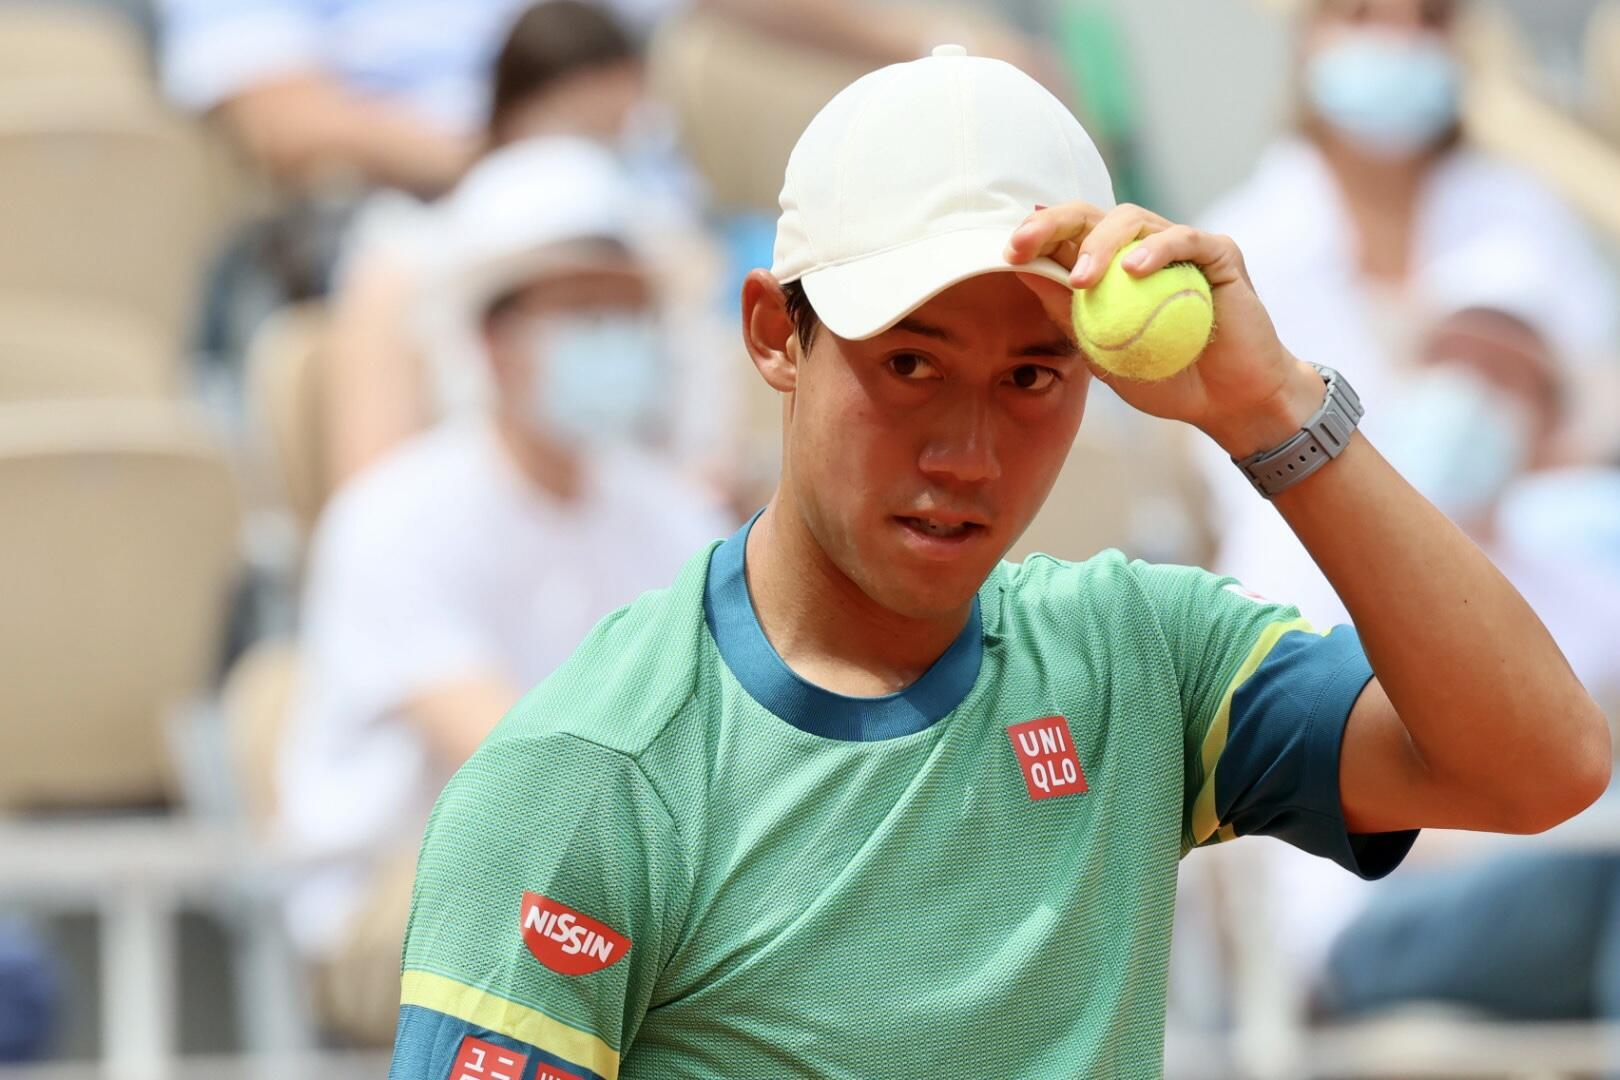 Kei Nishikori, a former world number four, advanced to the third round at the French Open after a five set victory over the 23rd seed Karen Khachanov.